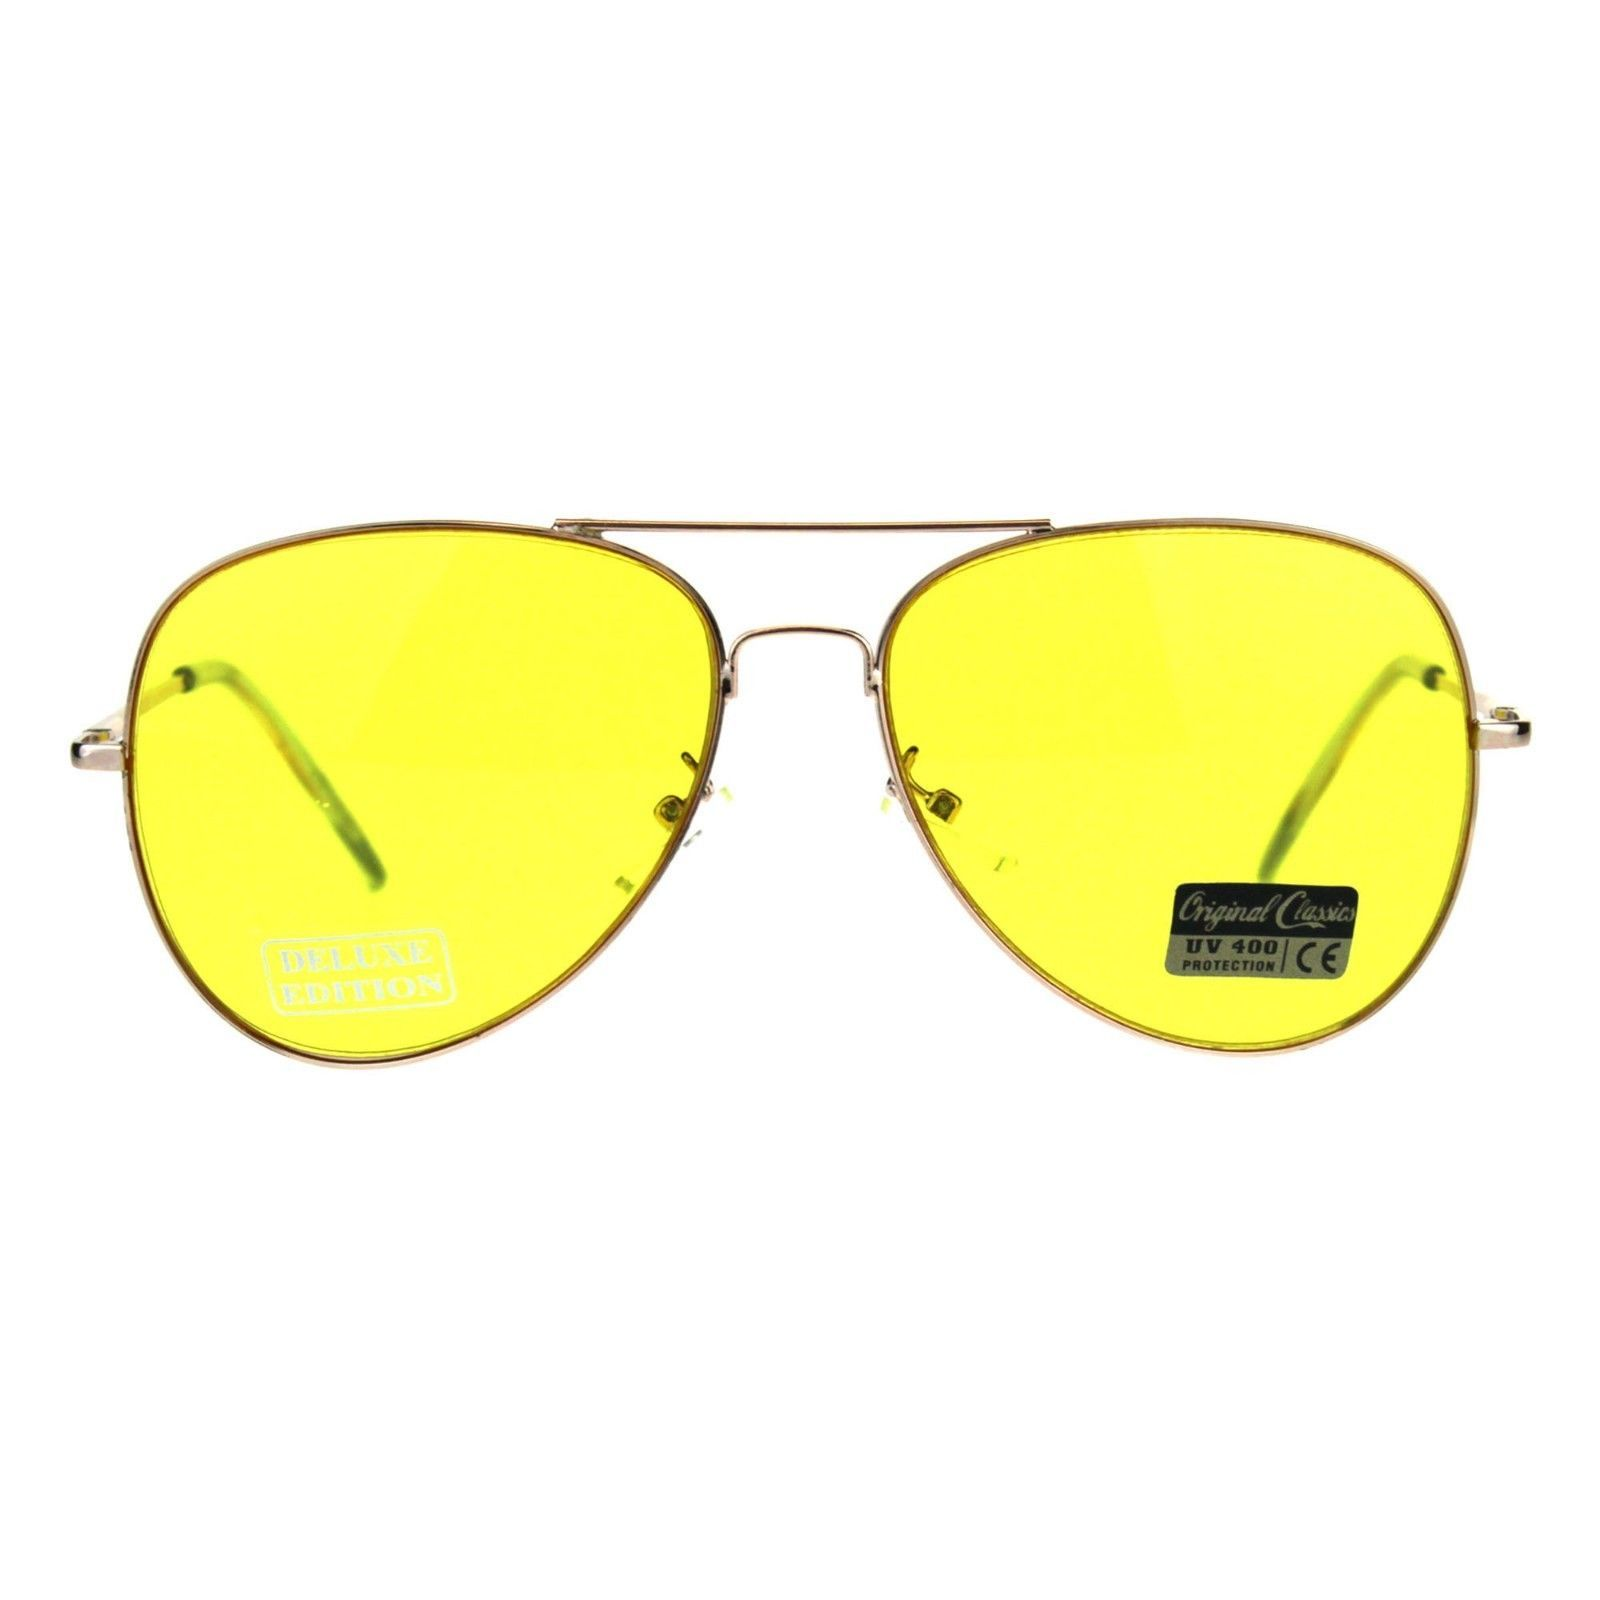 Air Force Aviator Sunglasses Classic Metal Frame Spring Hinge Yellow Lens